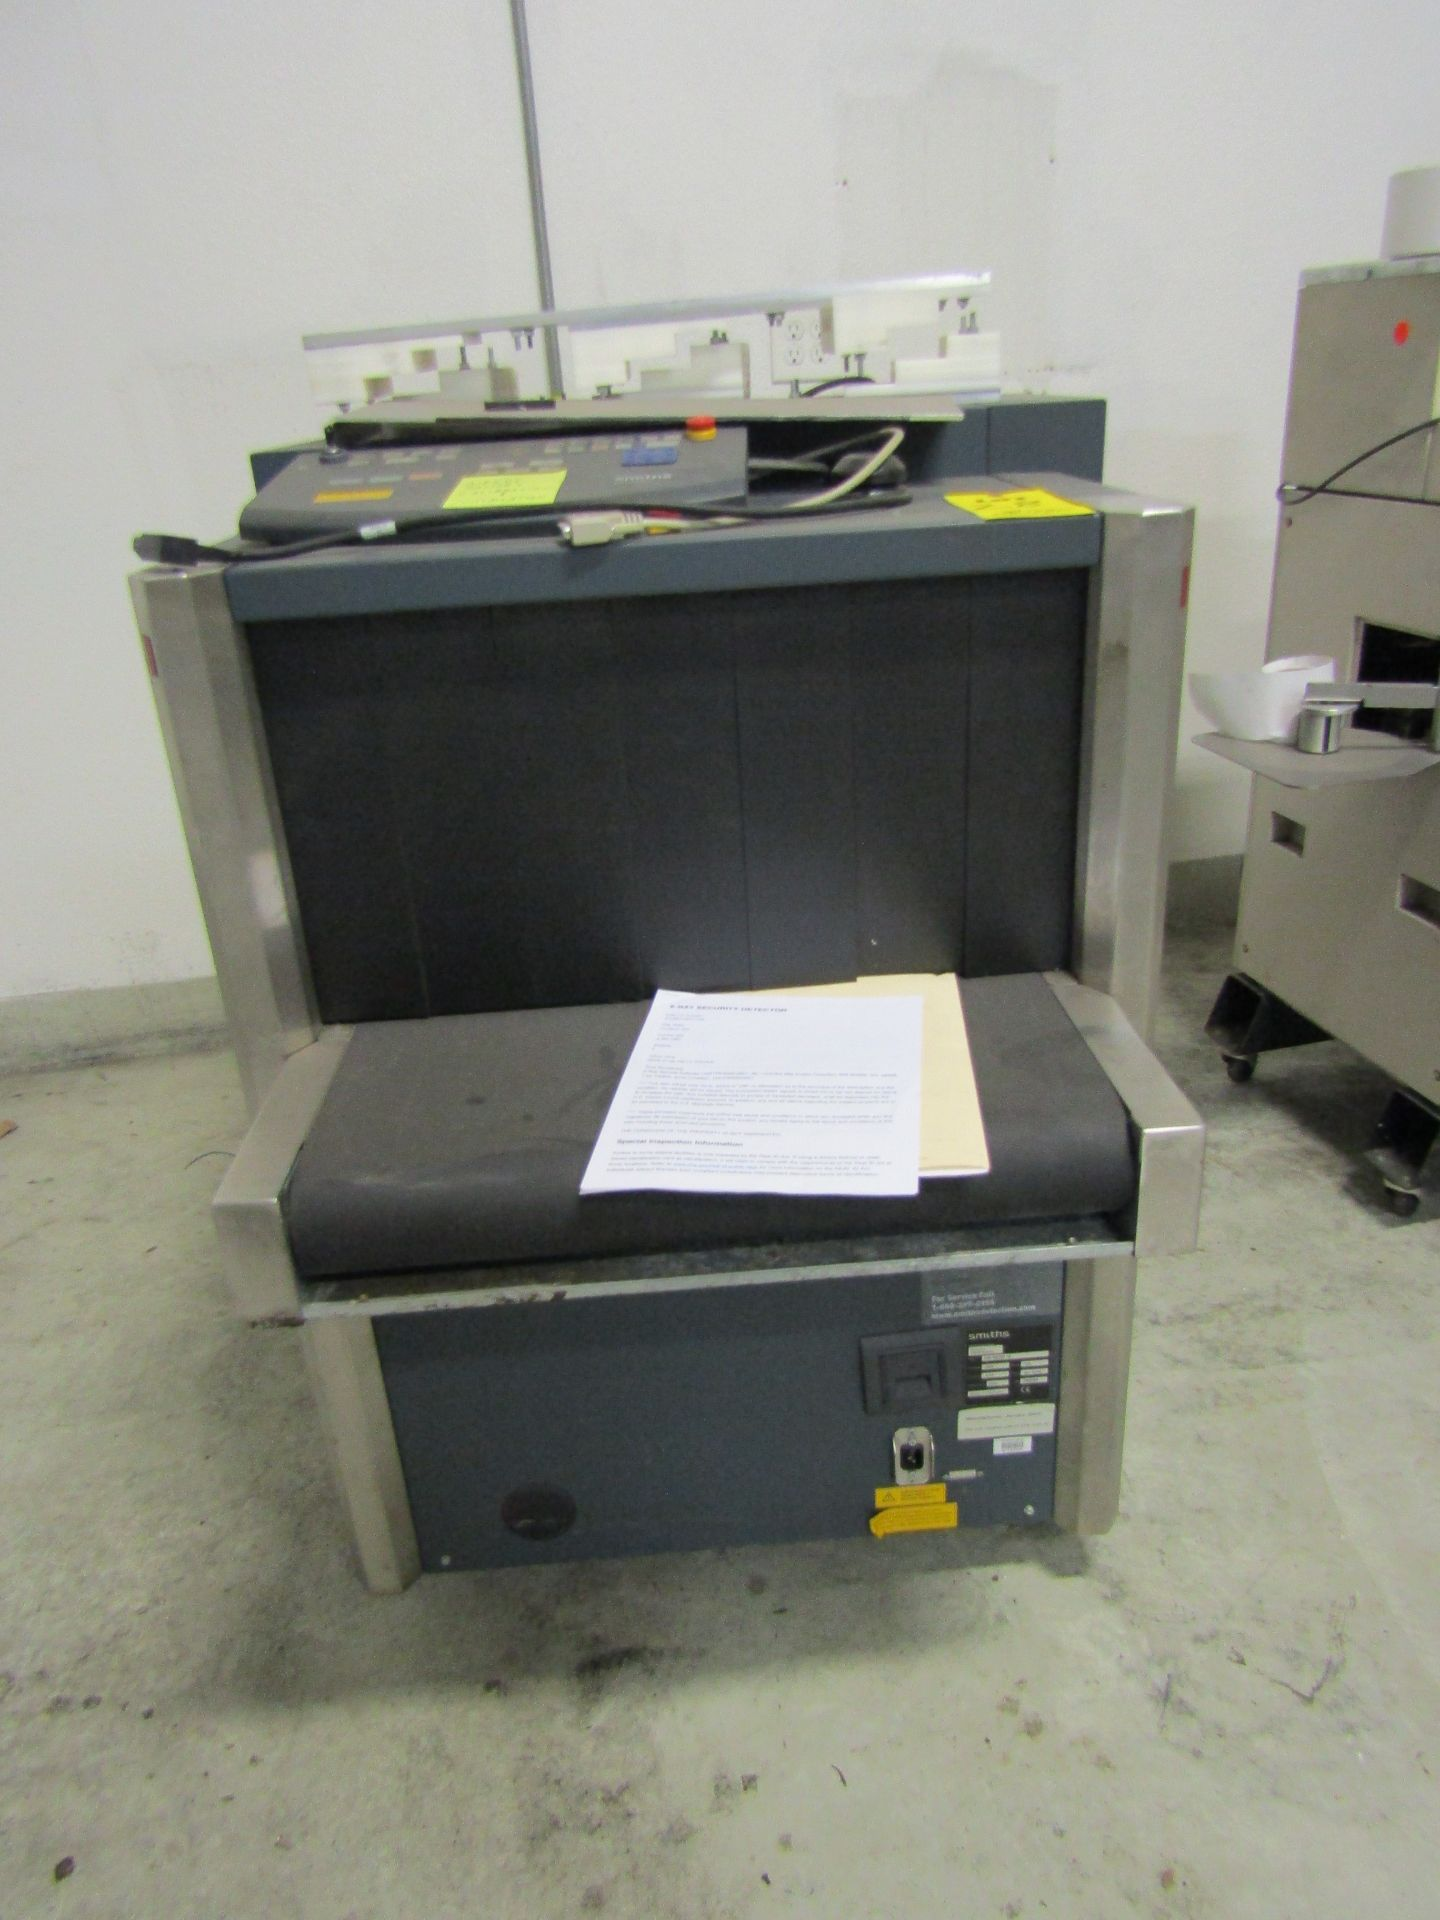 Lot 28 - SMITHS HEIMANN Security X-Ray Unit, Model HS 6030 DI, With Conveyor and Control, S/N 26569 **Needs